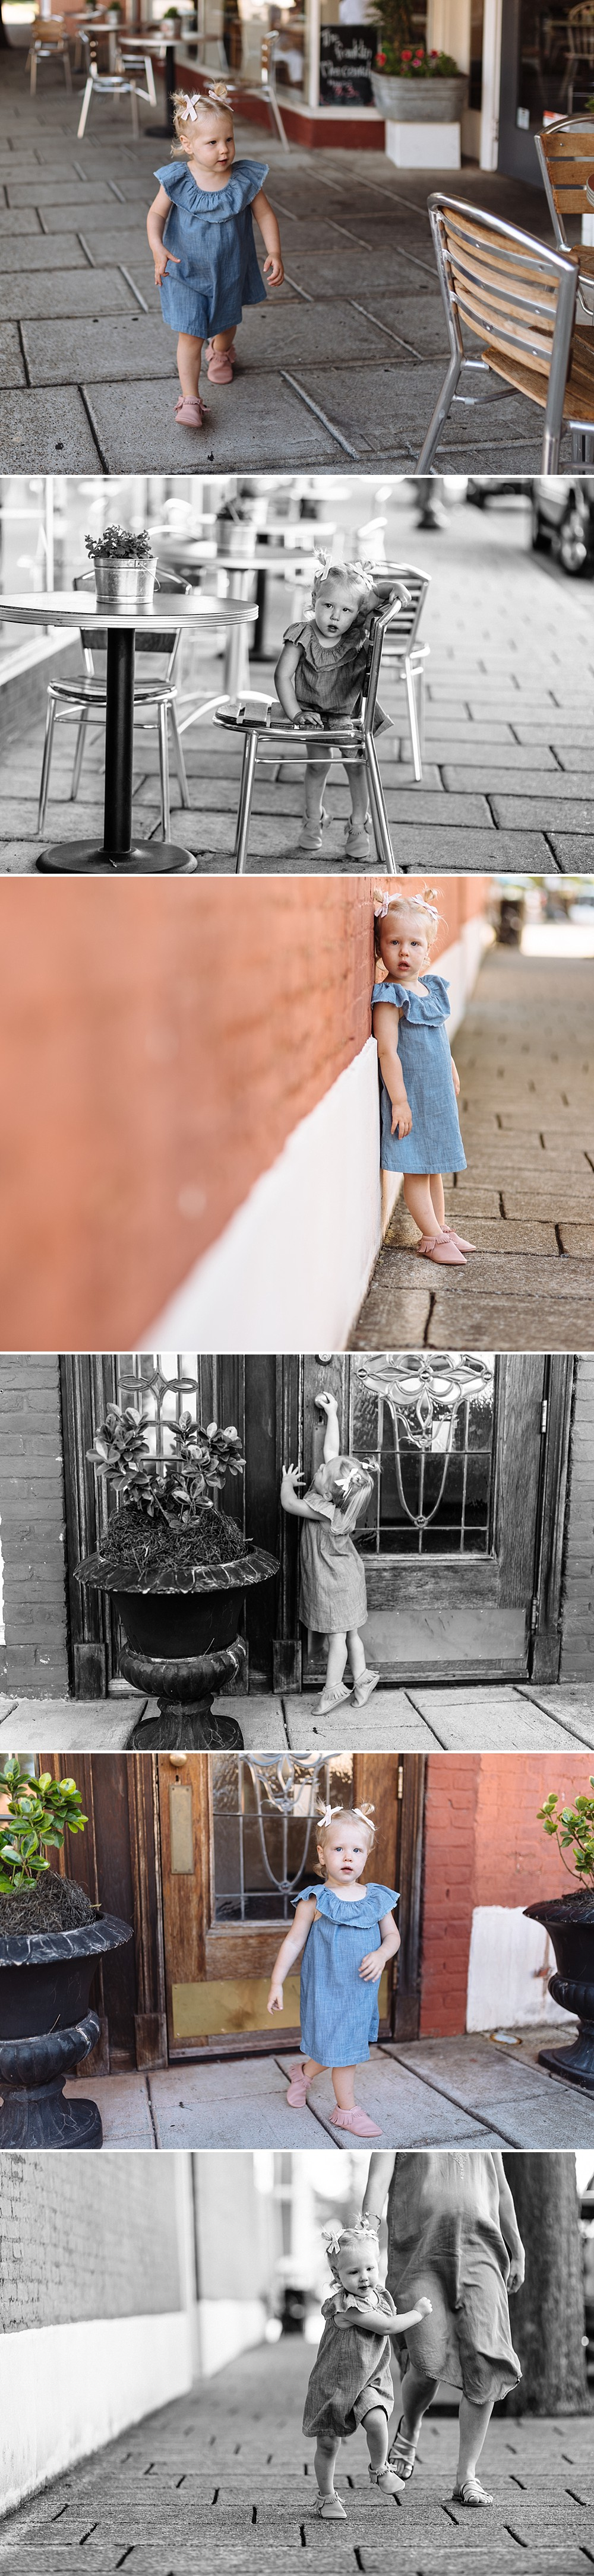 Barrett_2_Year_Birthday_Milestone_Franklin_Family_Photographer_Child_Harlinsdale_Farm_Downtown_Franklin-28.jpg